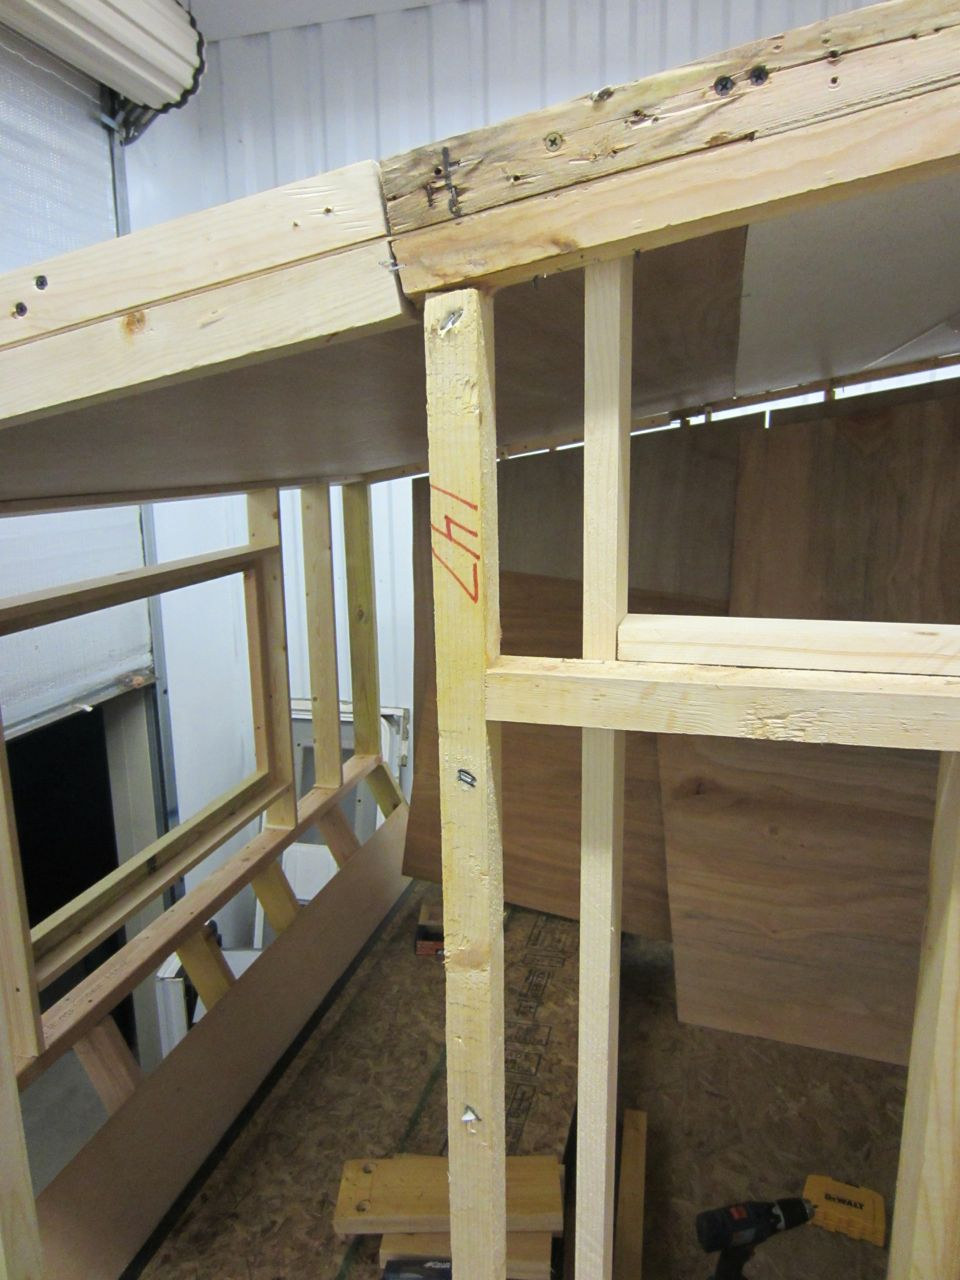 Here you can see the two layers of front window frames and the two layers of the side window frames built for the extra insulation. You can also where we connected the new roof to the old roof.